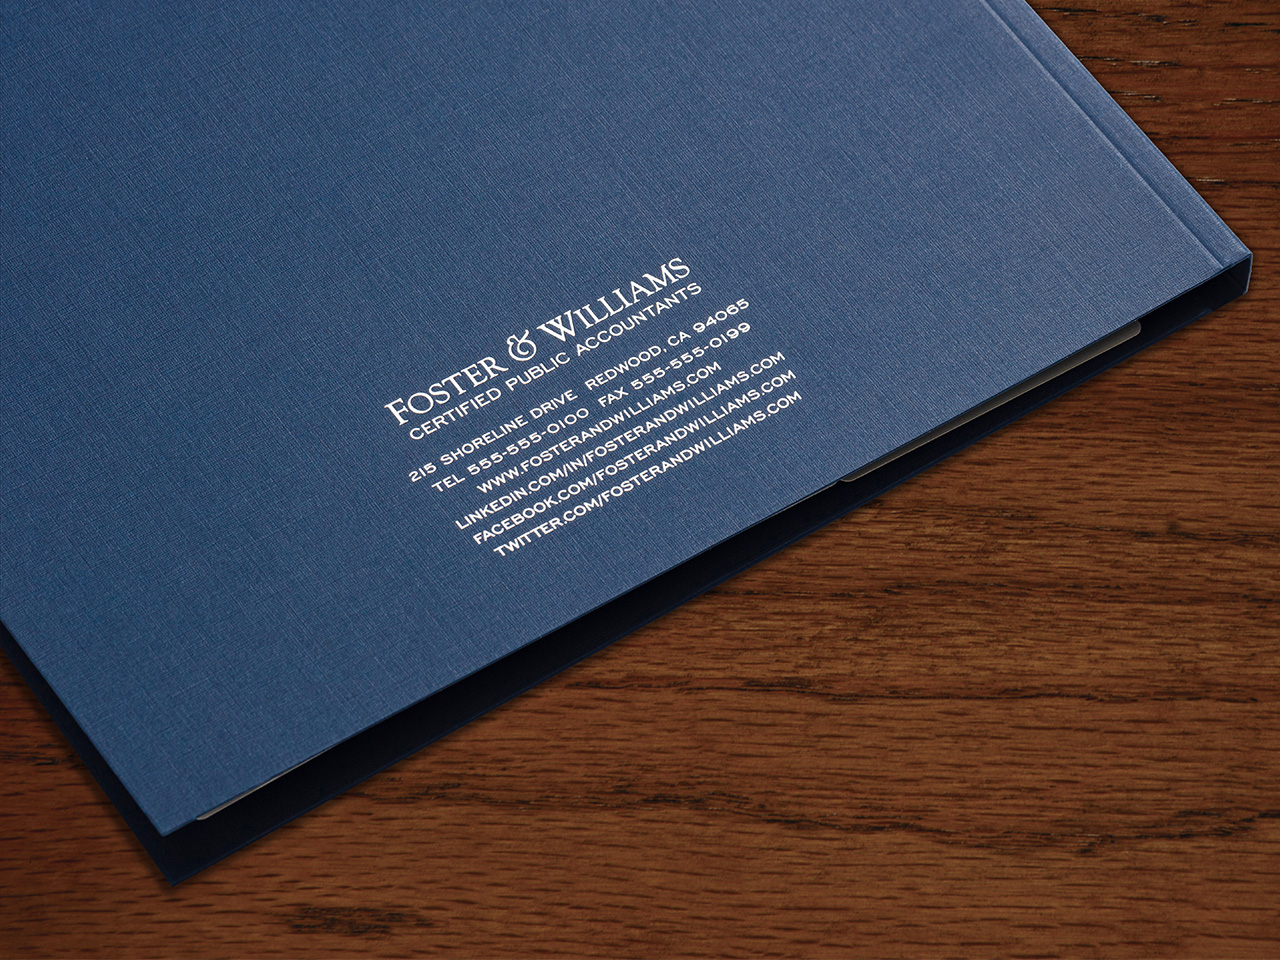 Branded Folders with Back Cover Imprinting Example